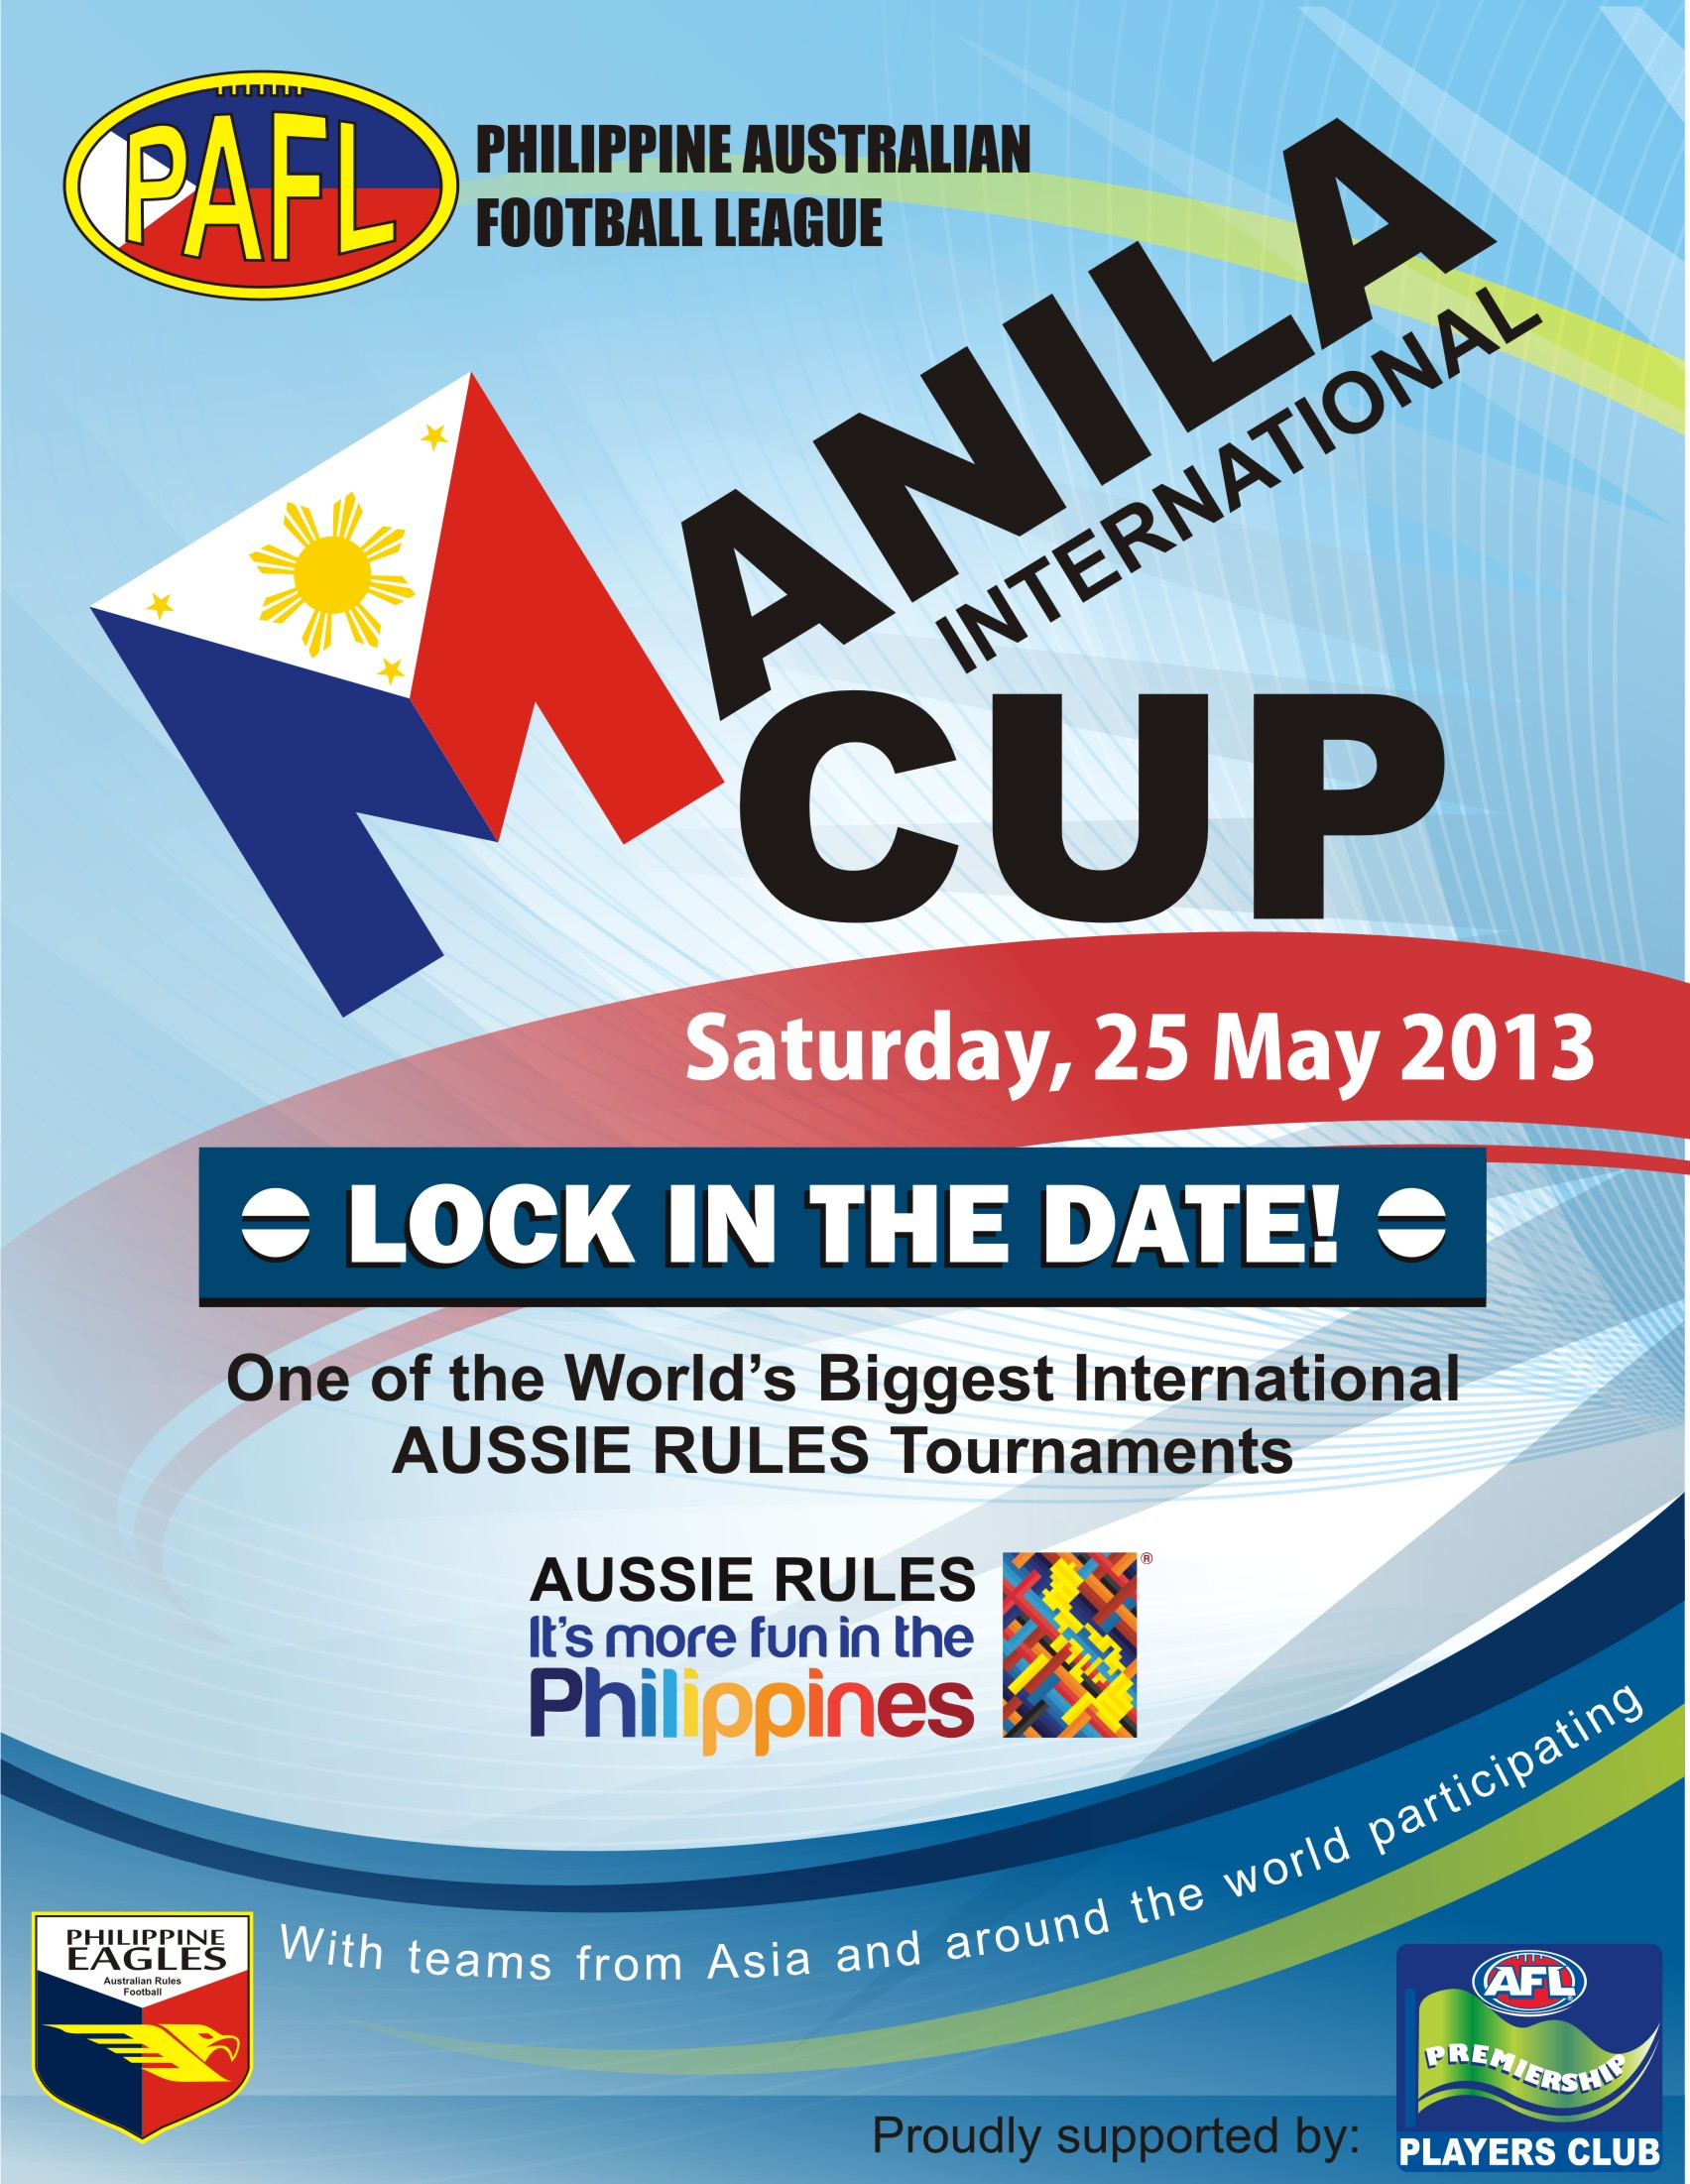 Tomorrow, the Swannies will play in our first Manila International Cup.